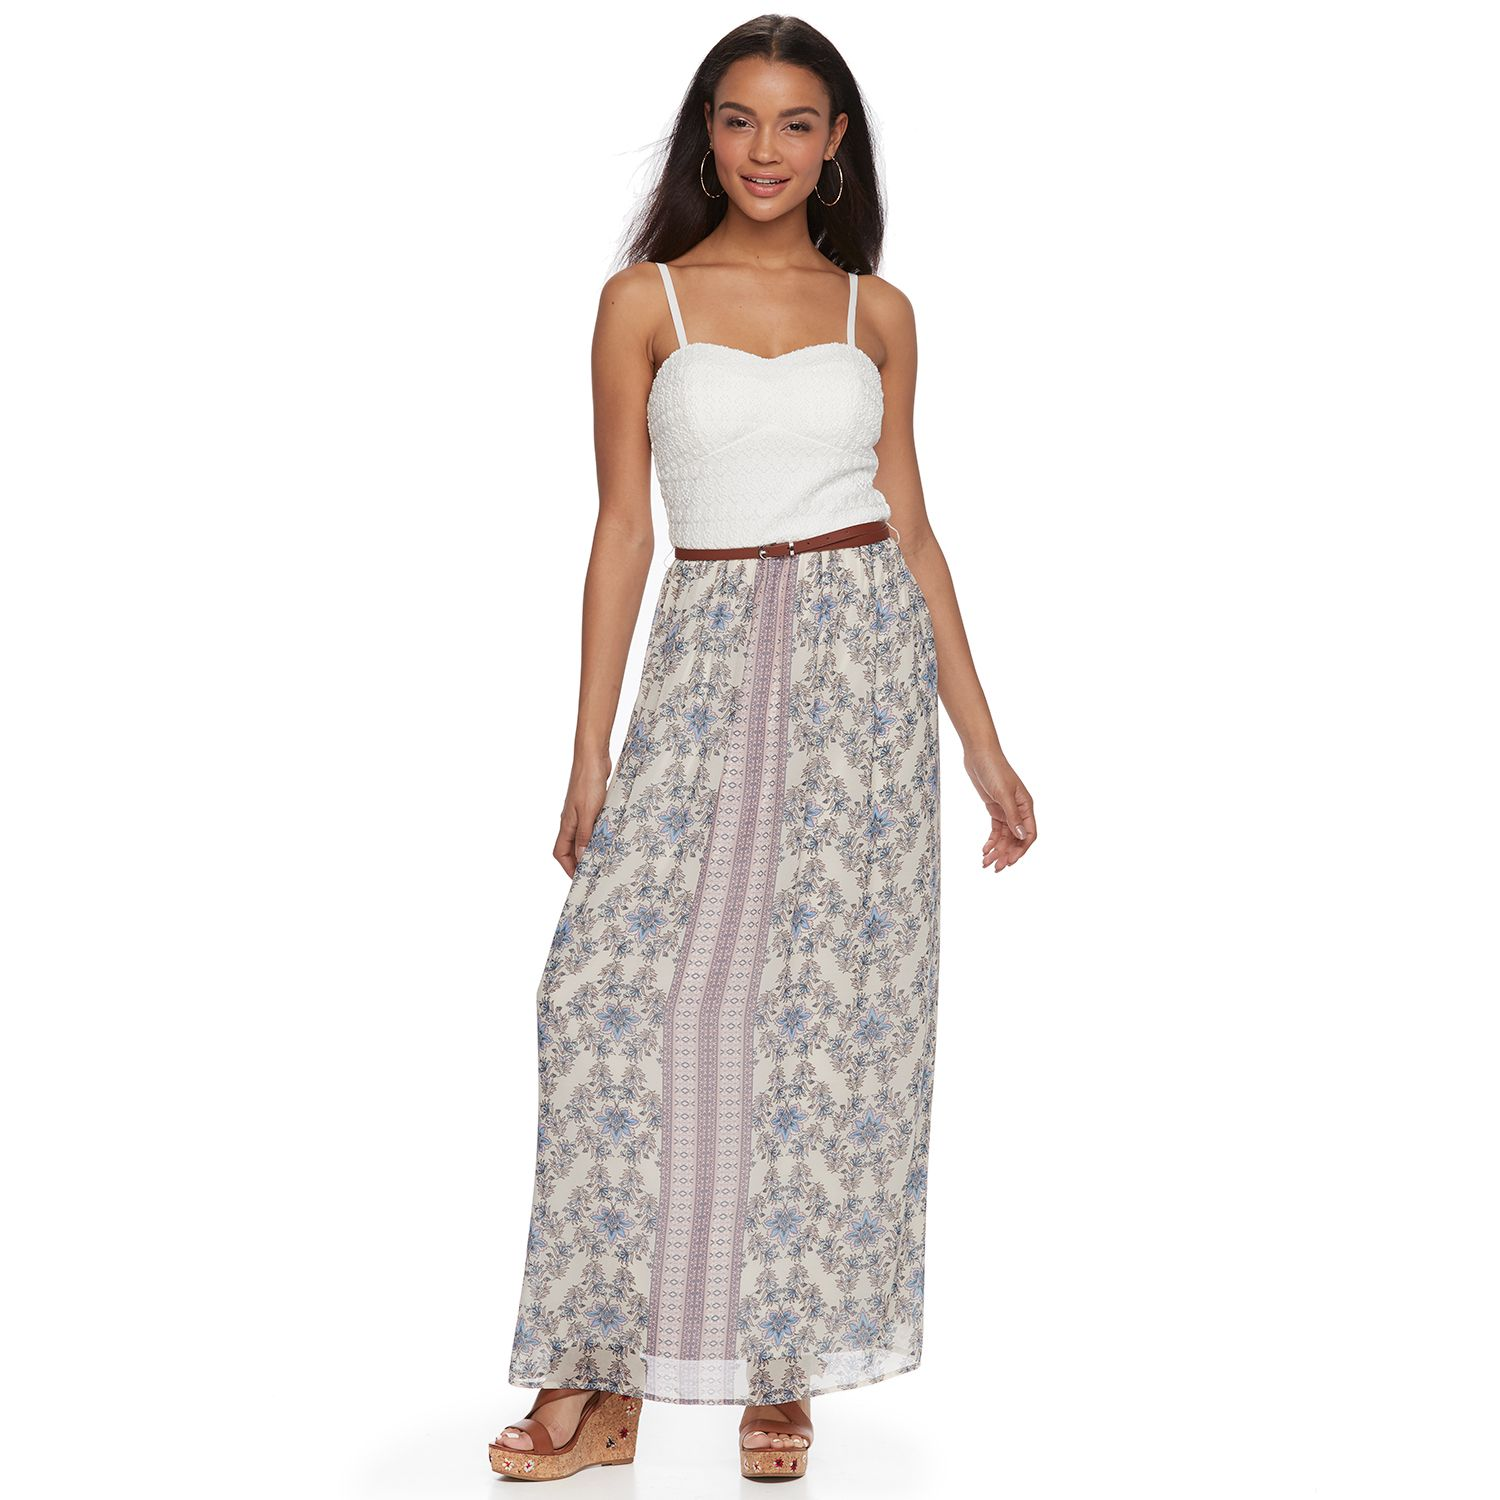 Lily rose maxi dresses